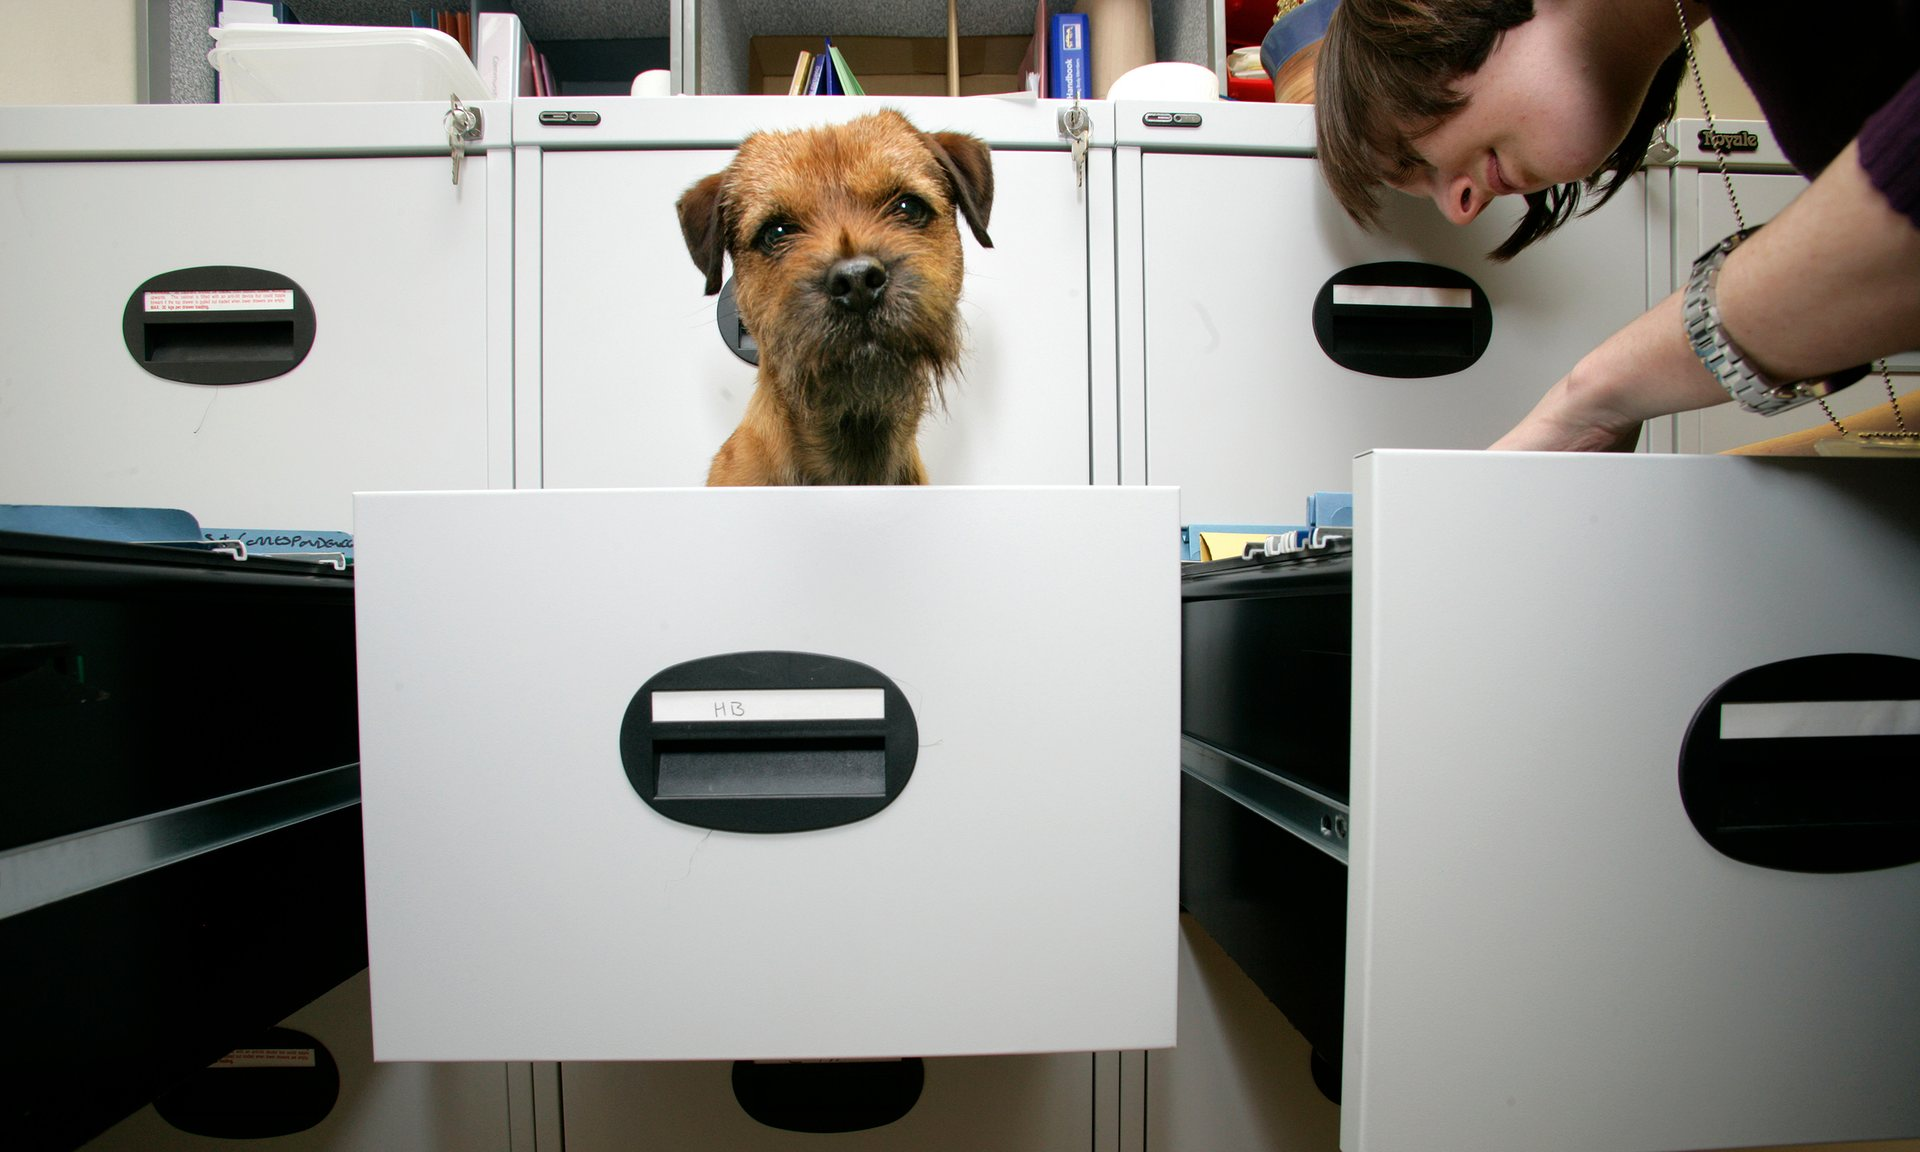 e3db74f79 Paws for Thought  Why Allowing Dogs in the Office is a Good Idea ...